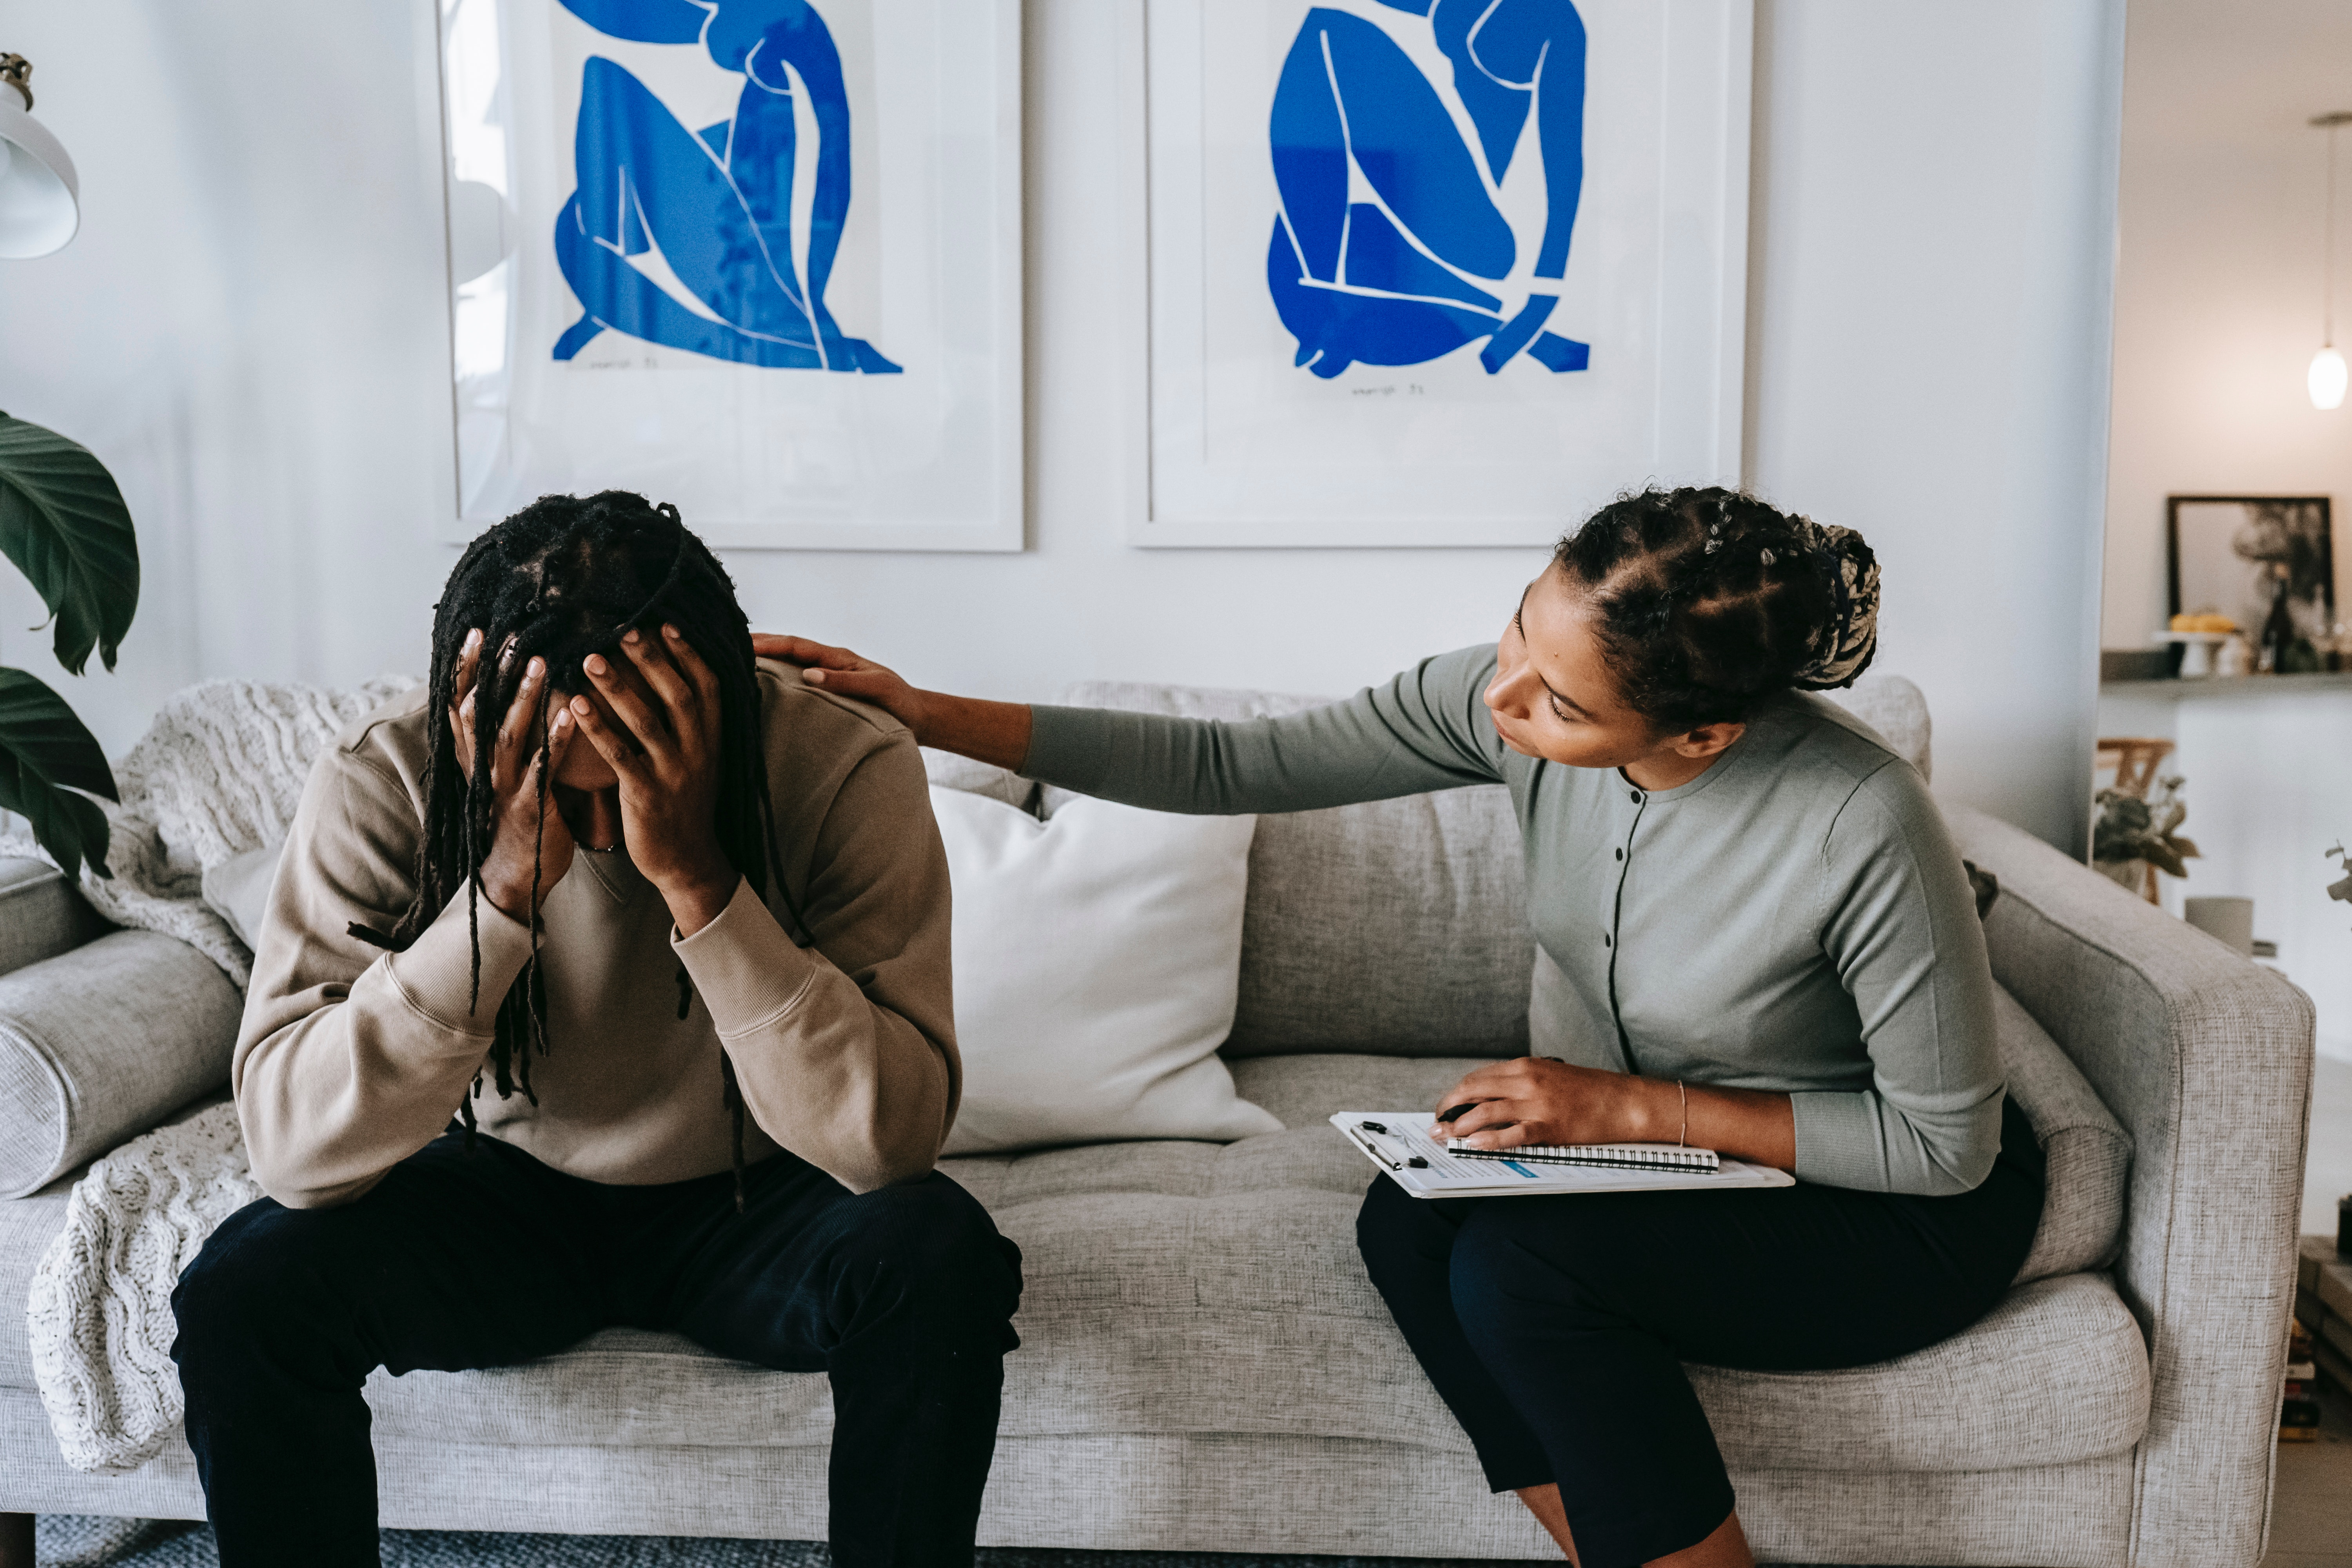 5 Ways to Support Your Partner During Difficult Times